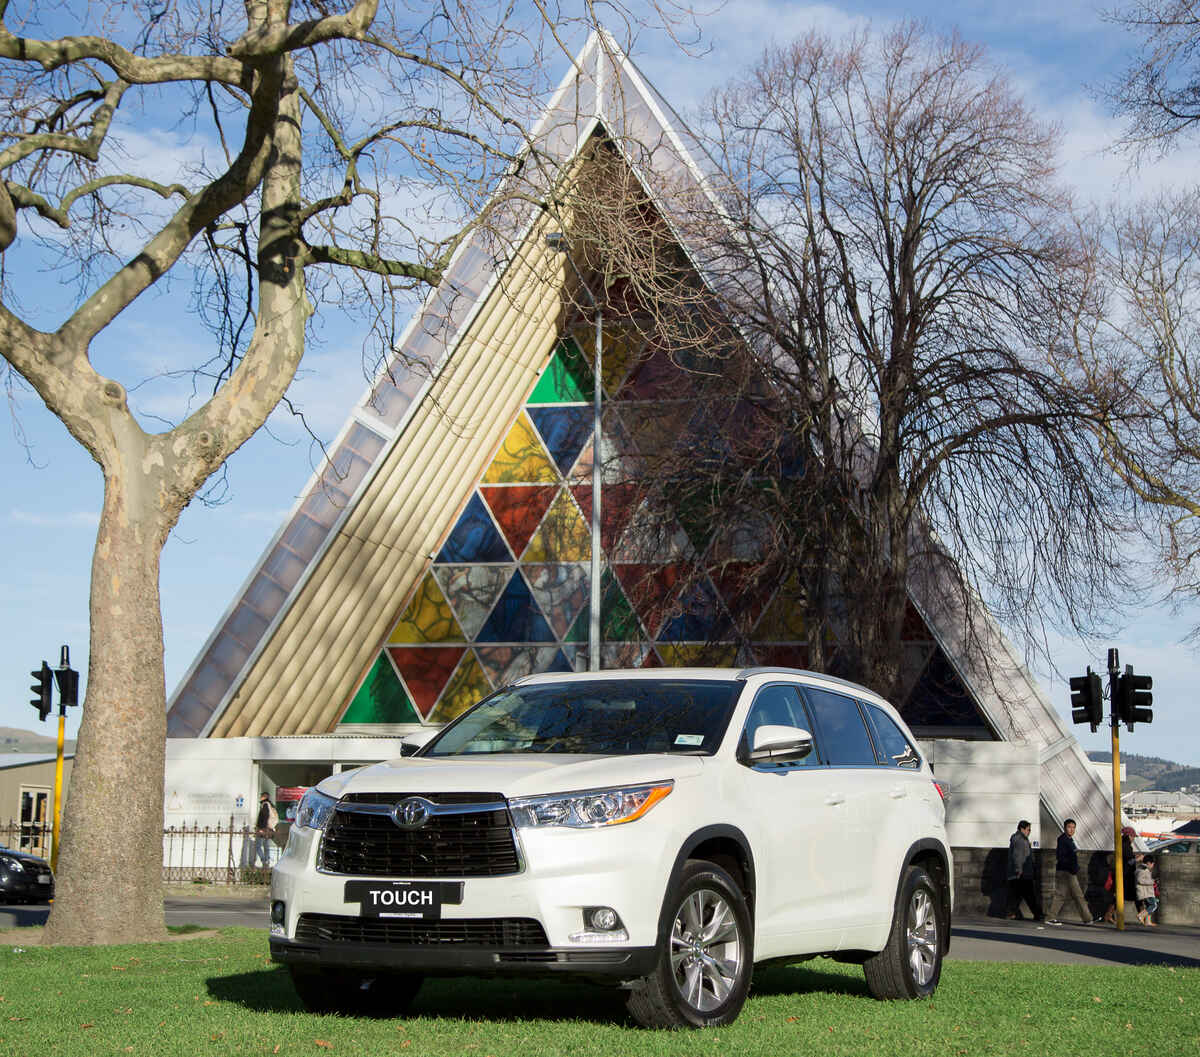 The all new Toyota Highlander